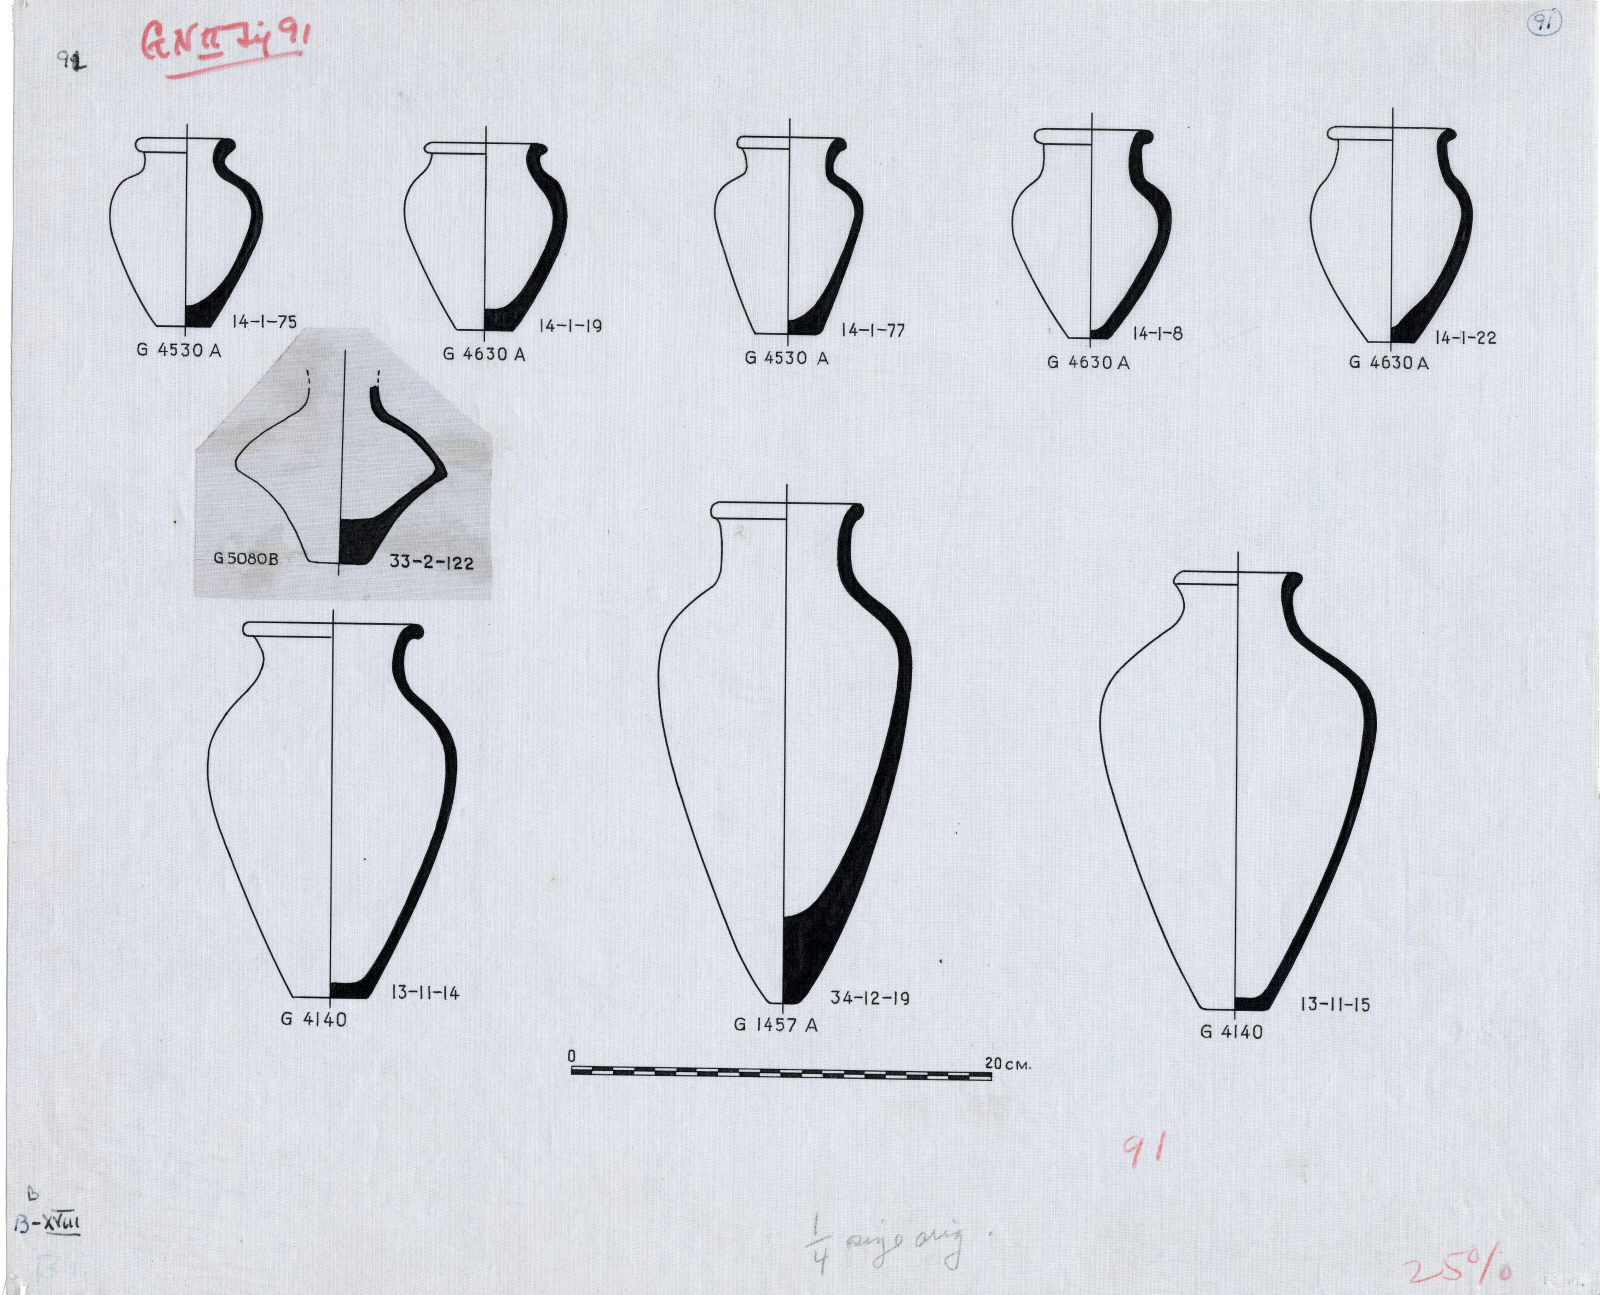 Drawings: Pottery jars from G 1457, G 4140, G 4530, G 4630, G 5080